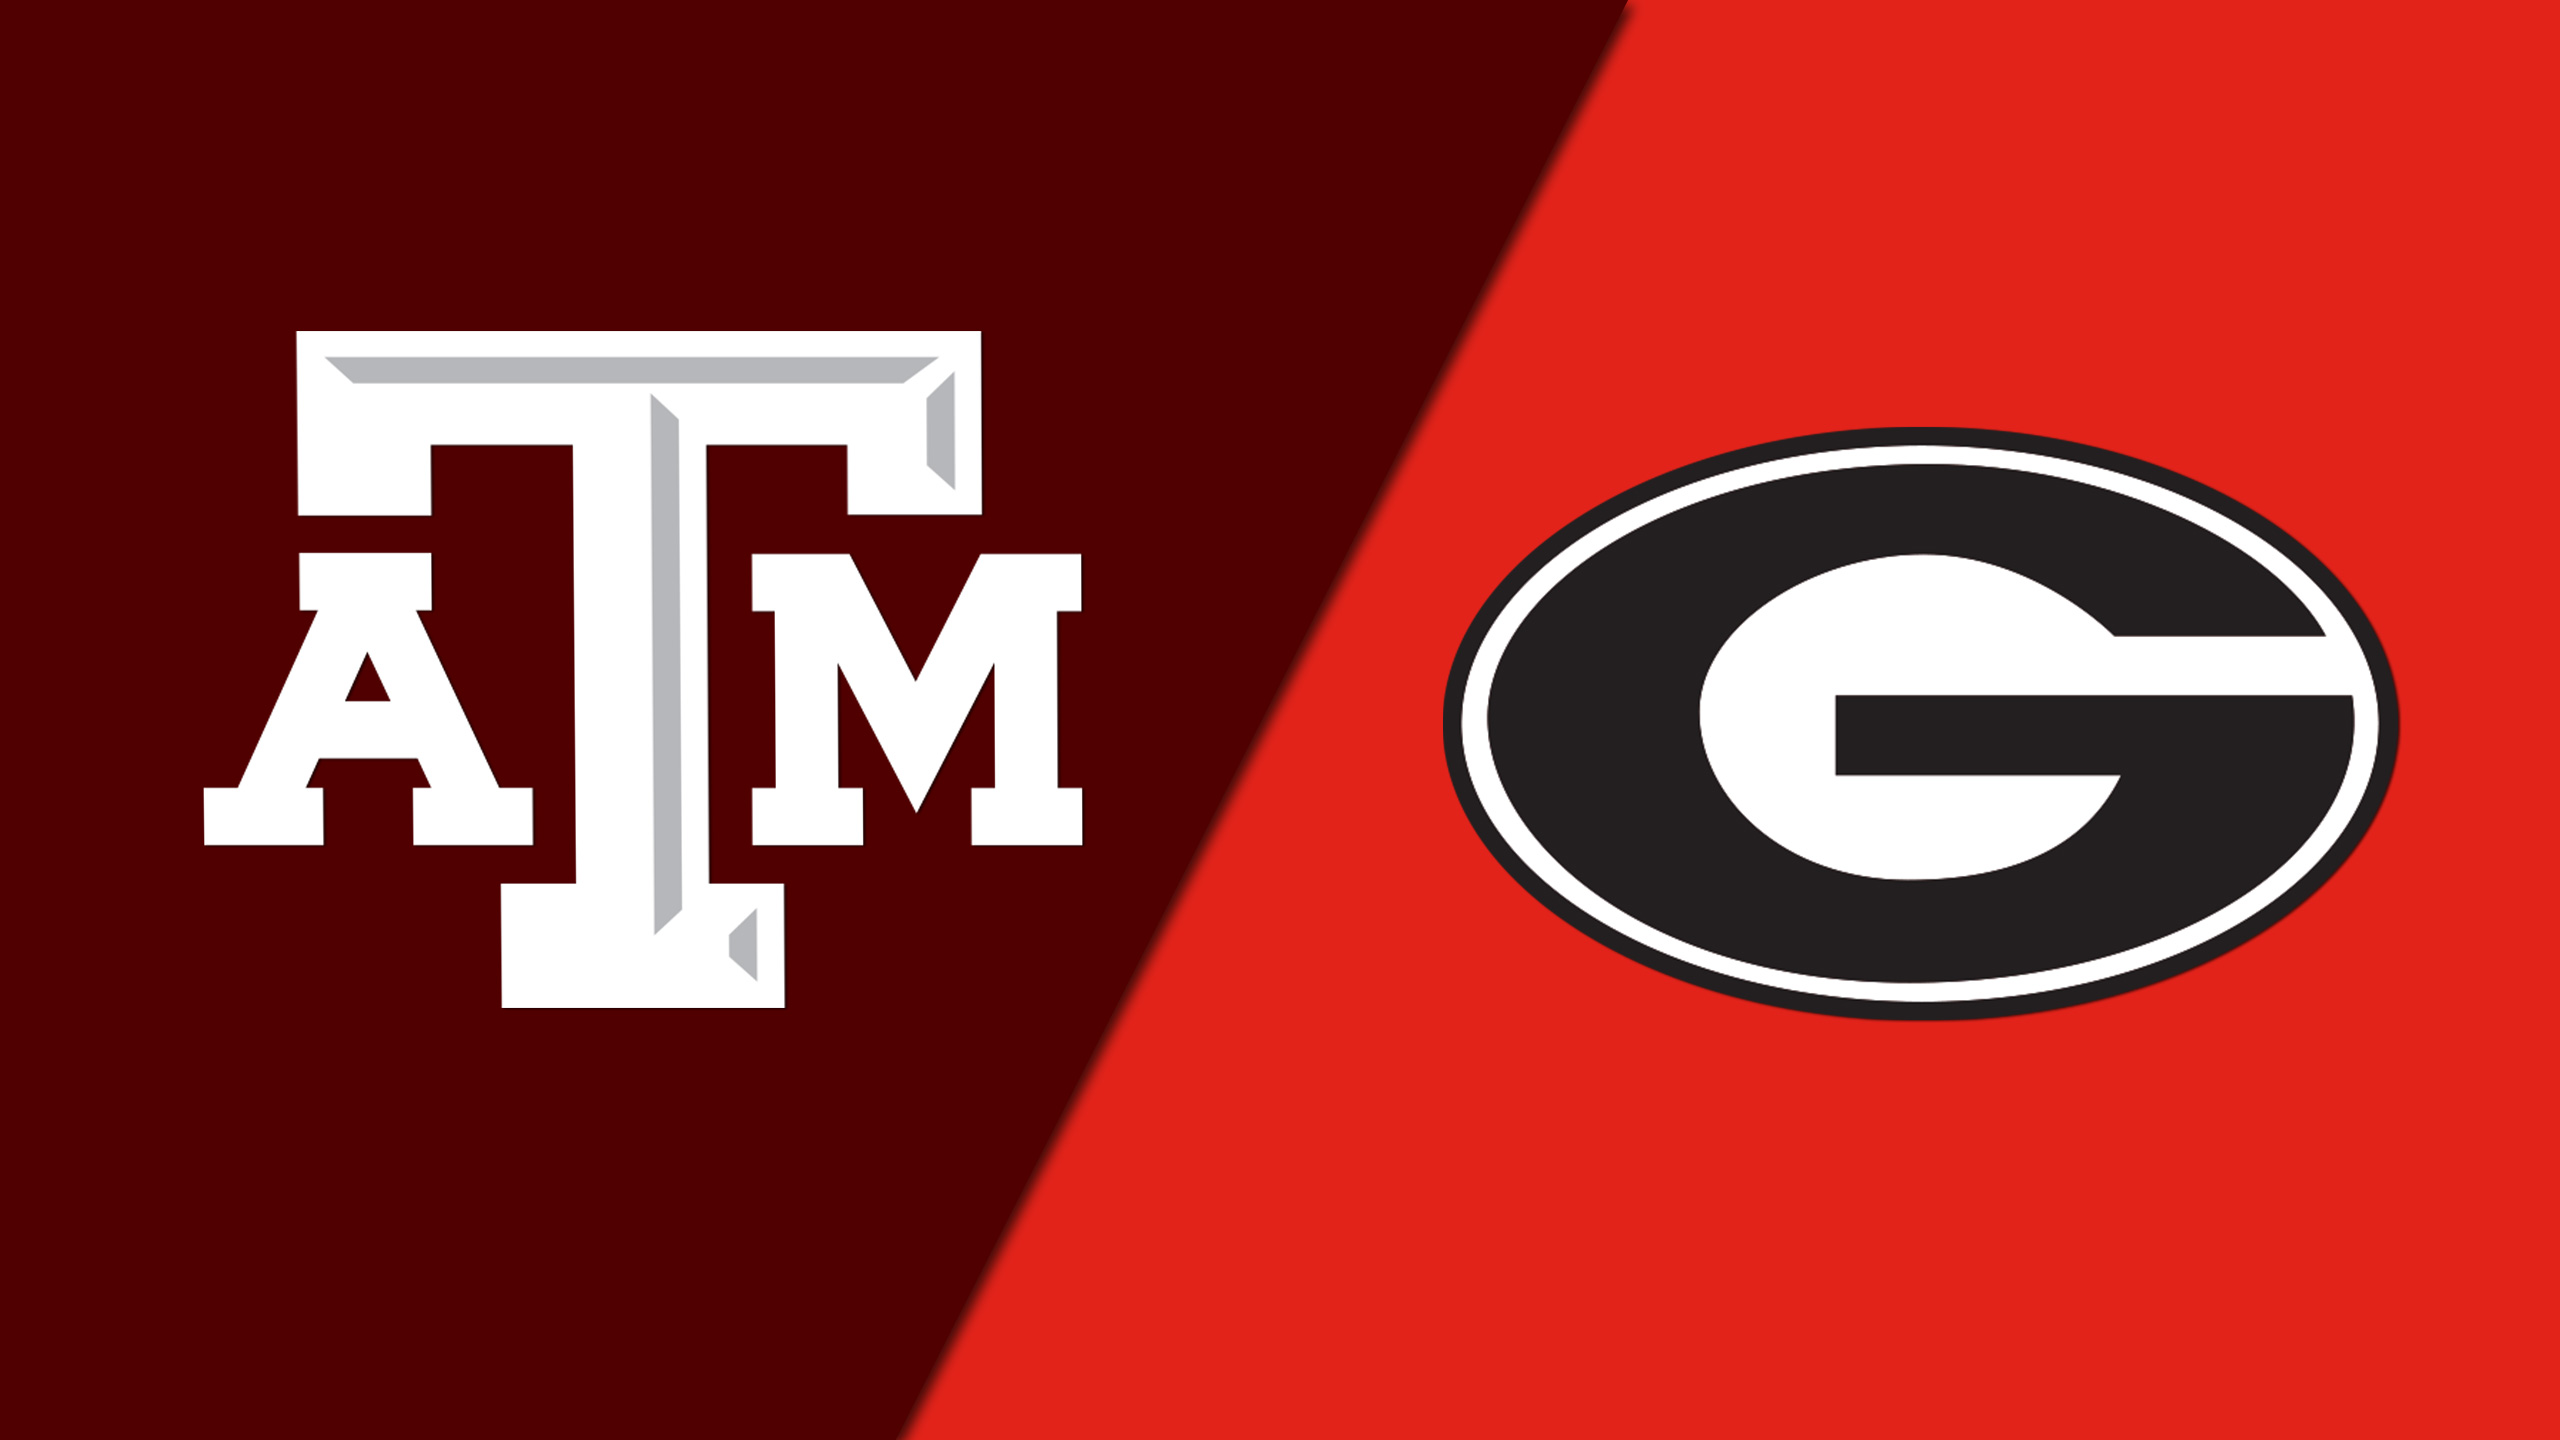 Texas A&M vs. Georgia (W Basketball) (re-air)